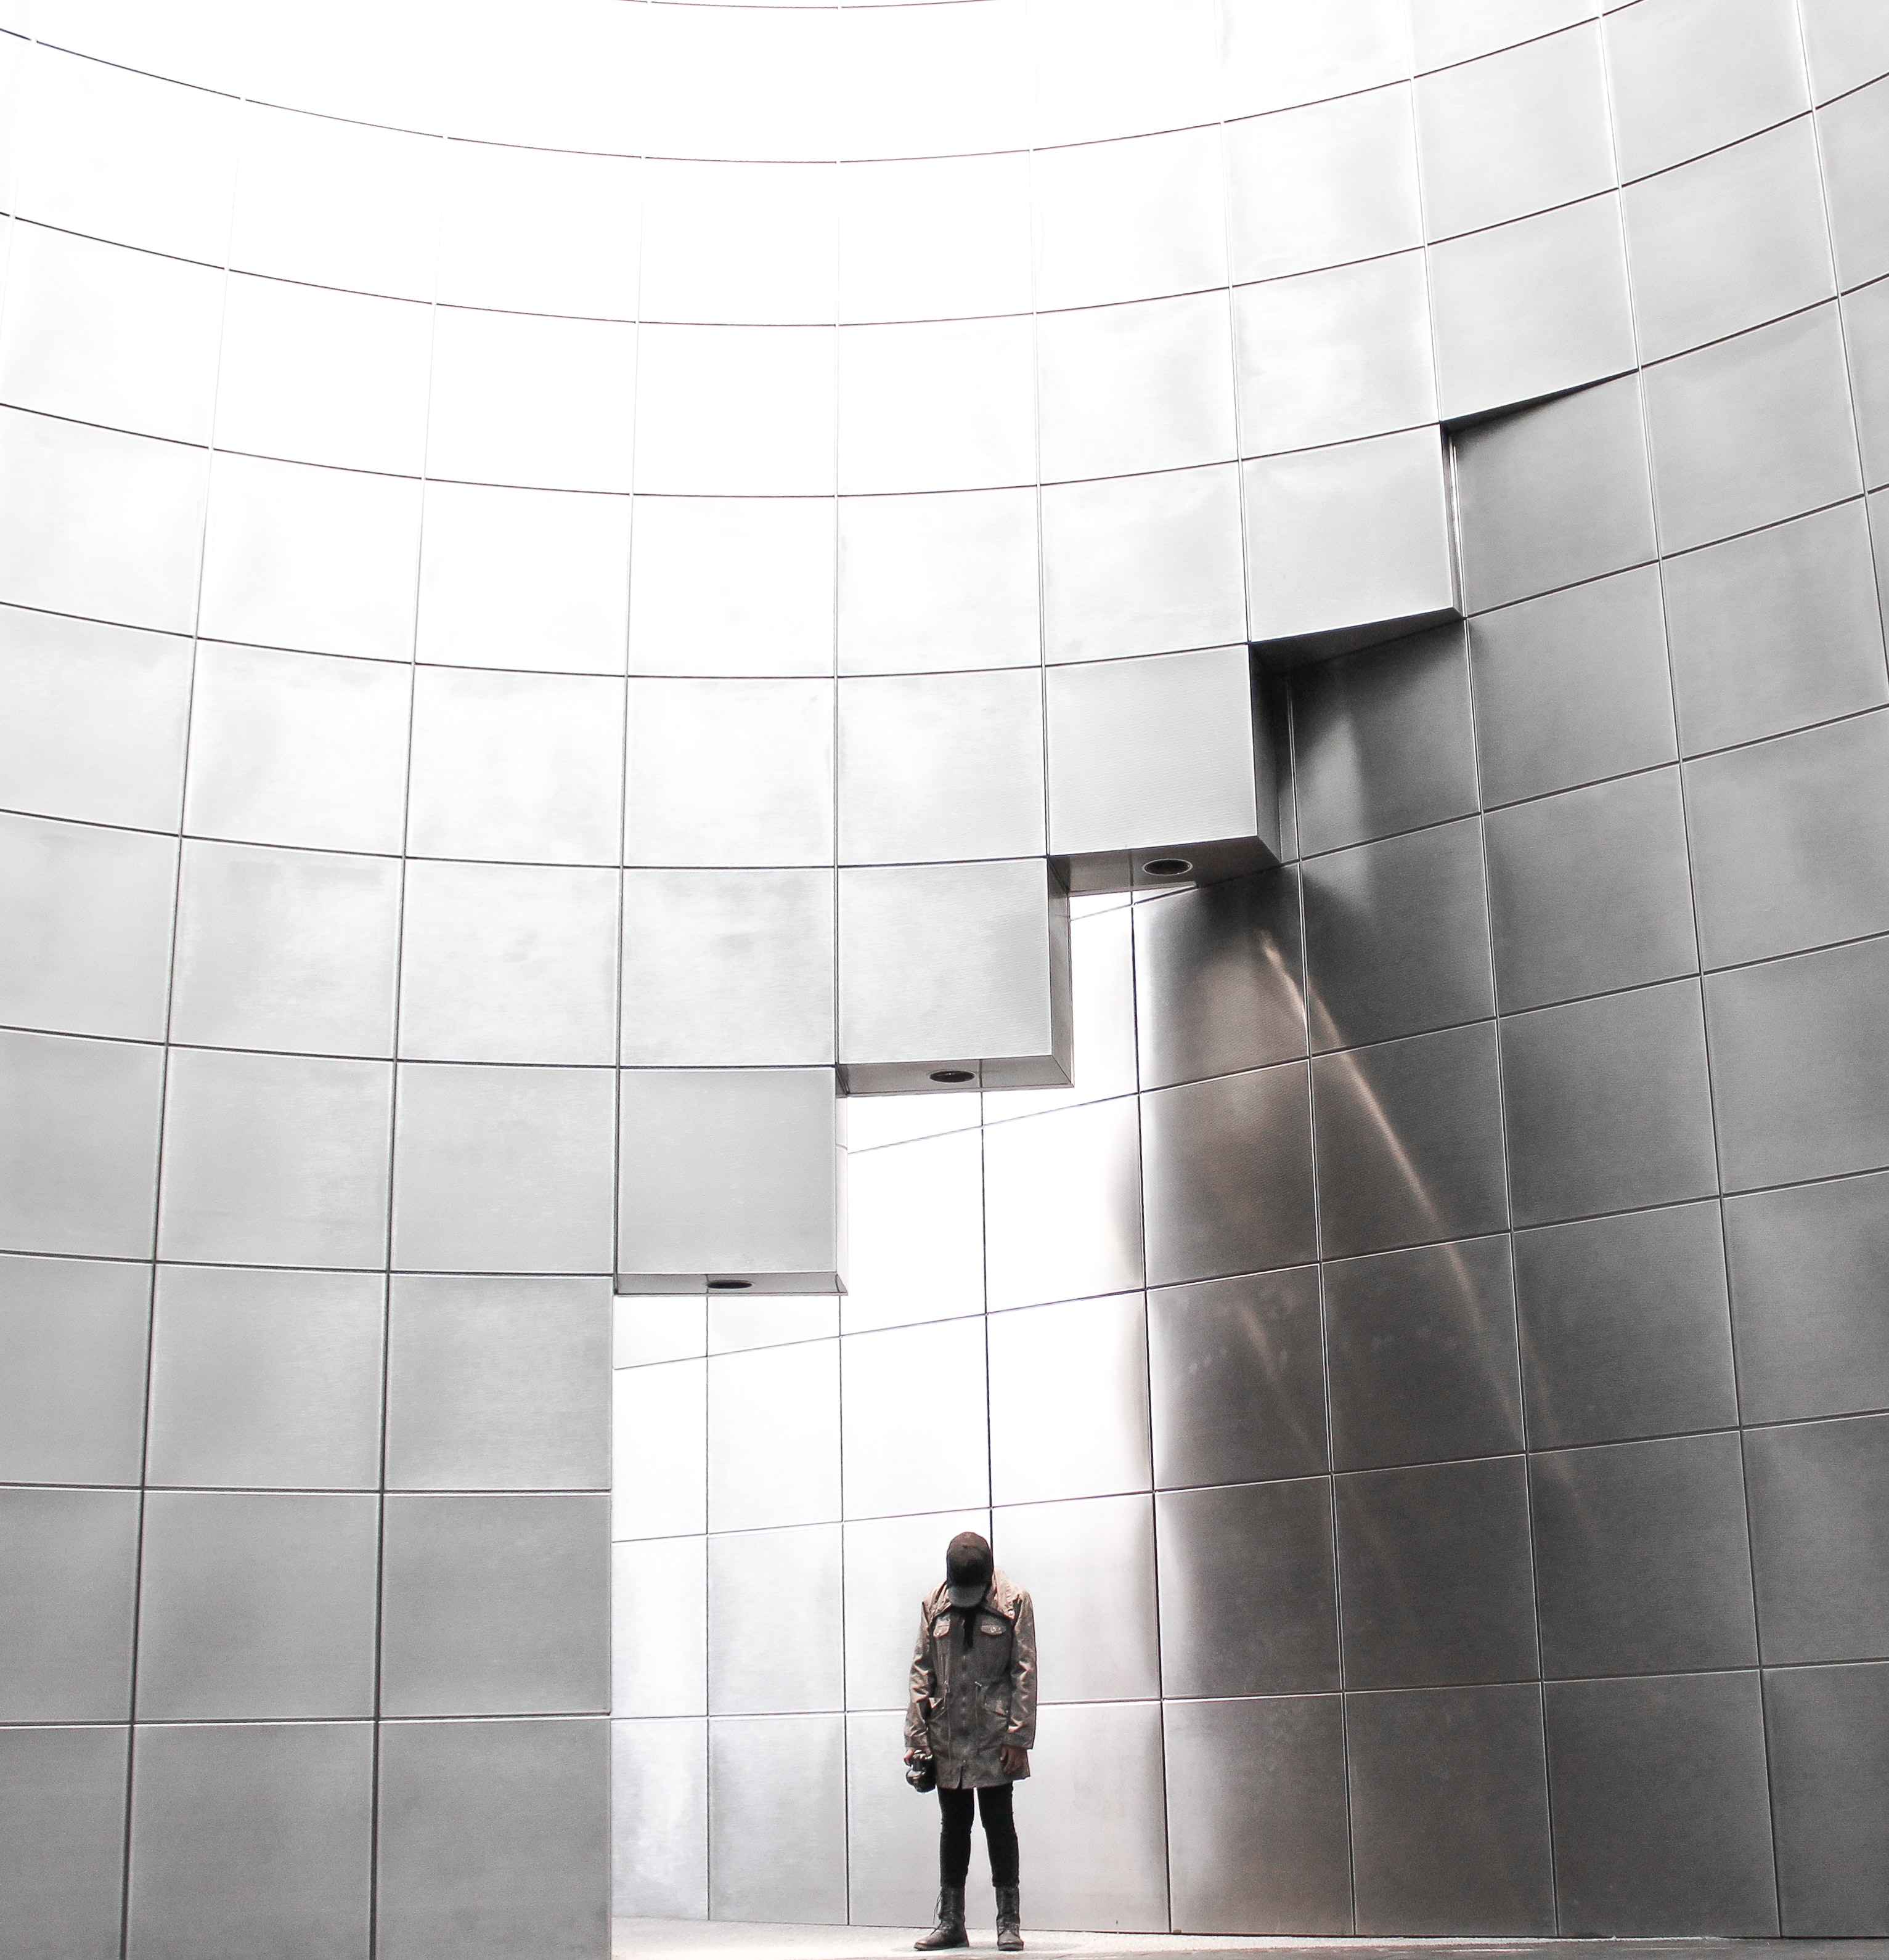 person standing under metal block building